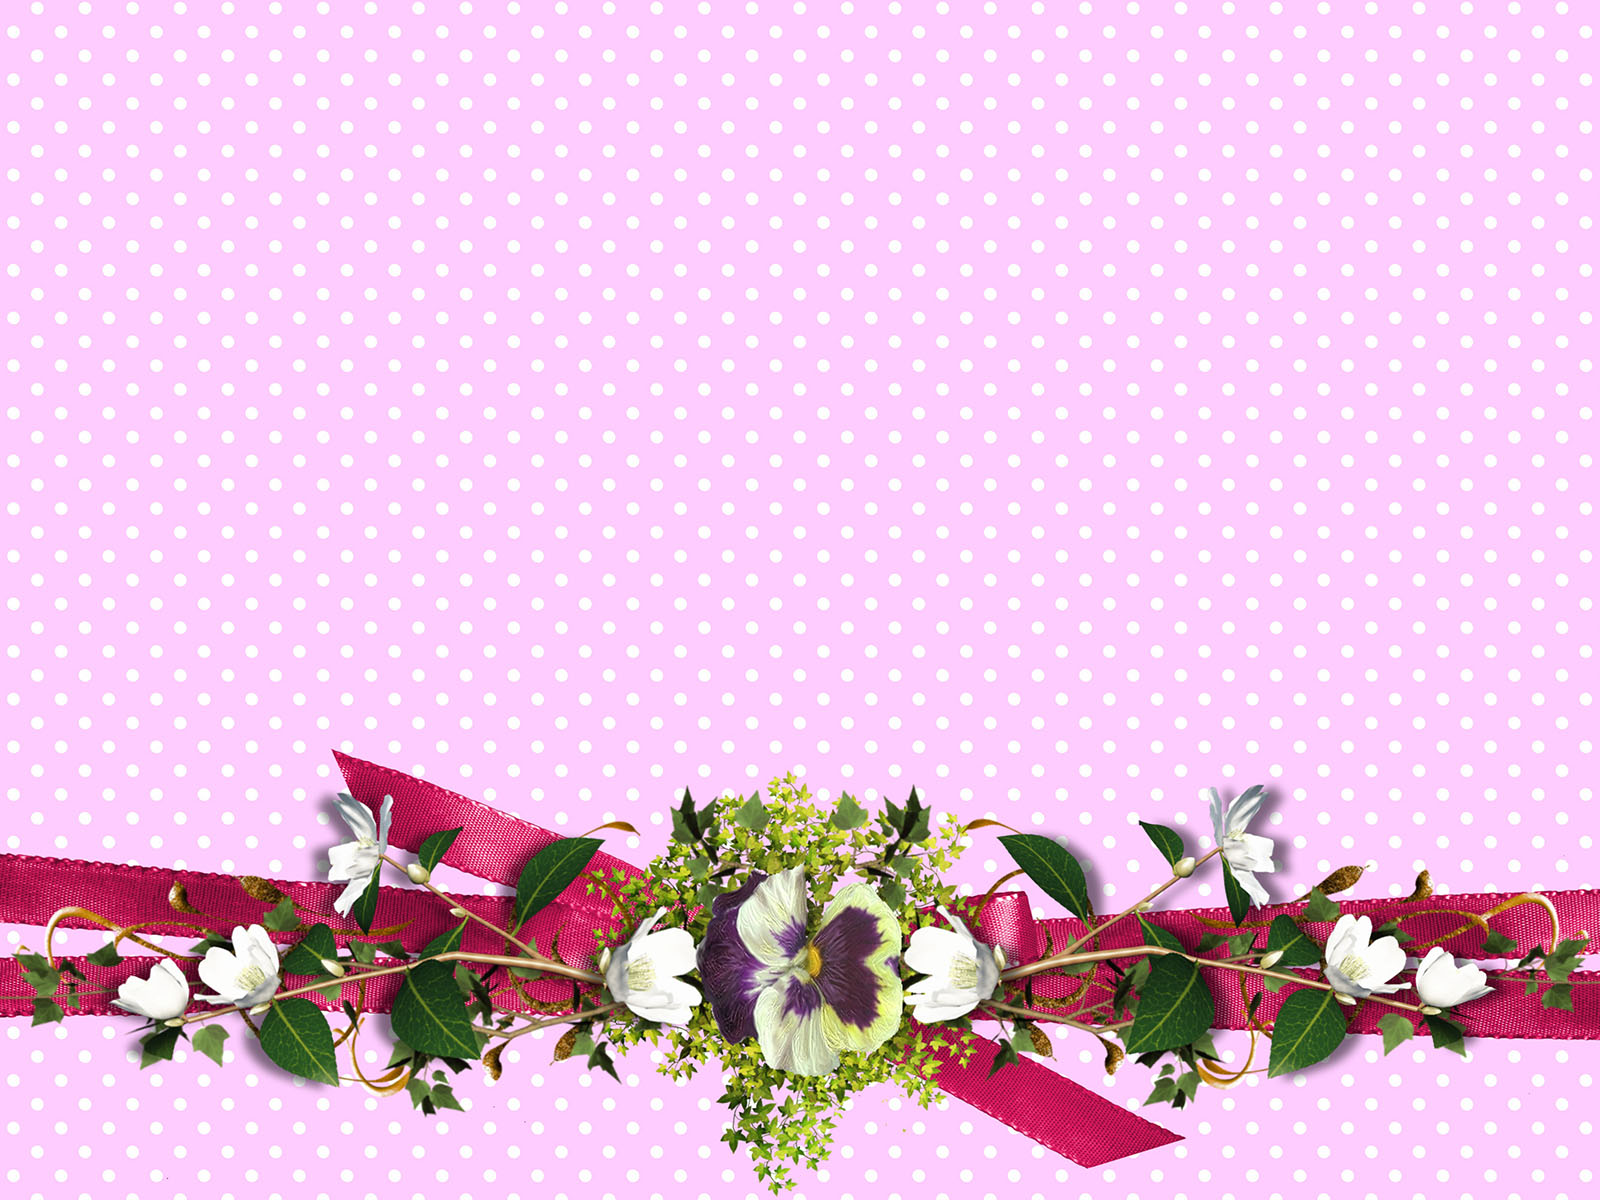 Flowers Paper Powerpoint Backgrounds